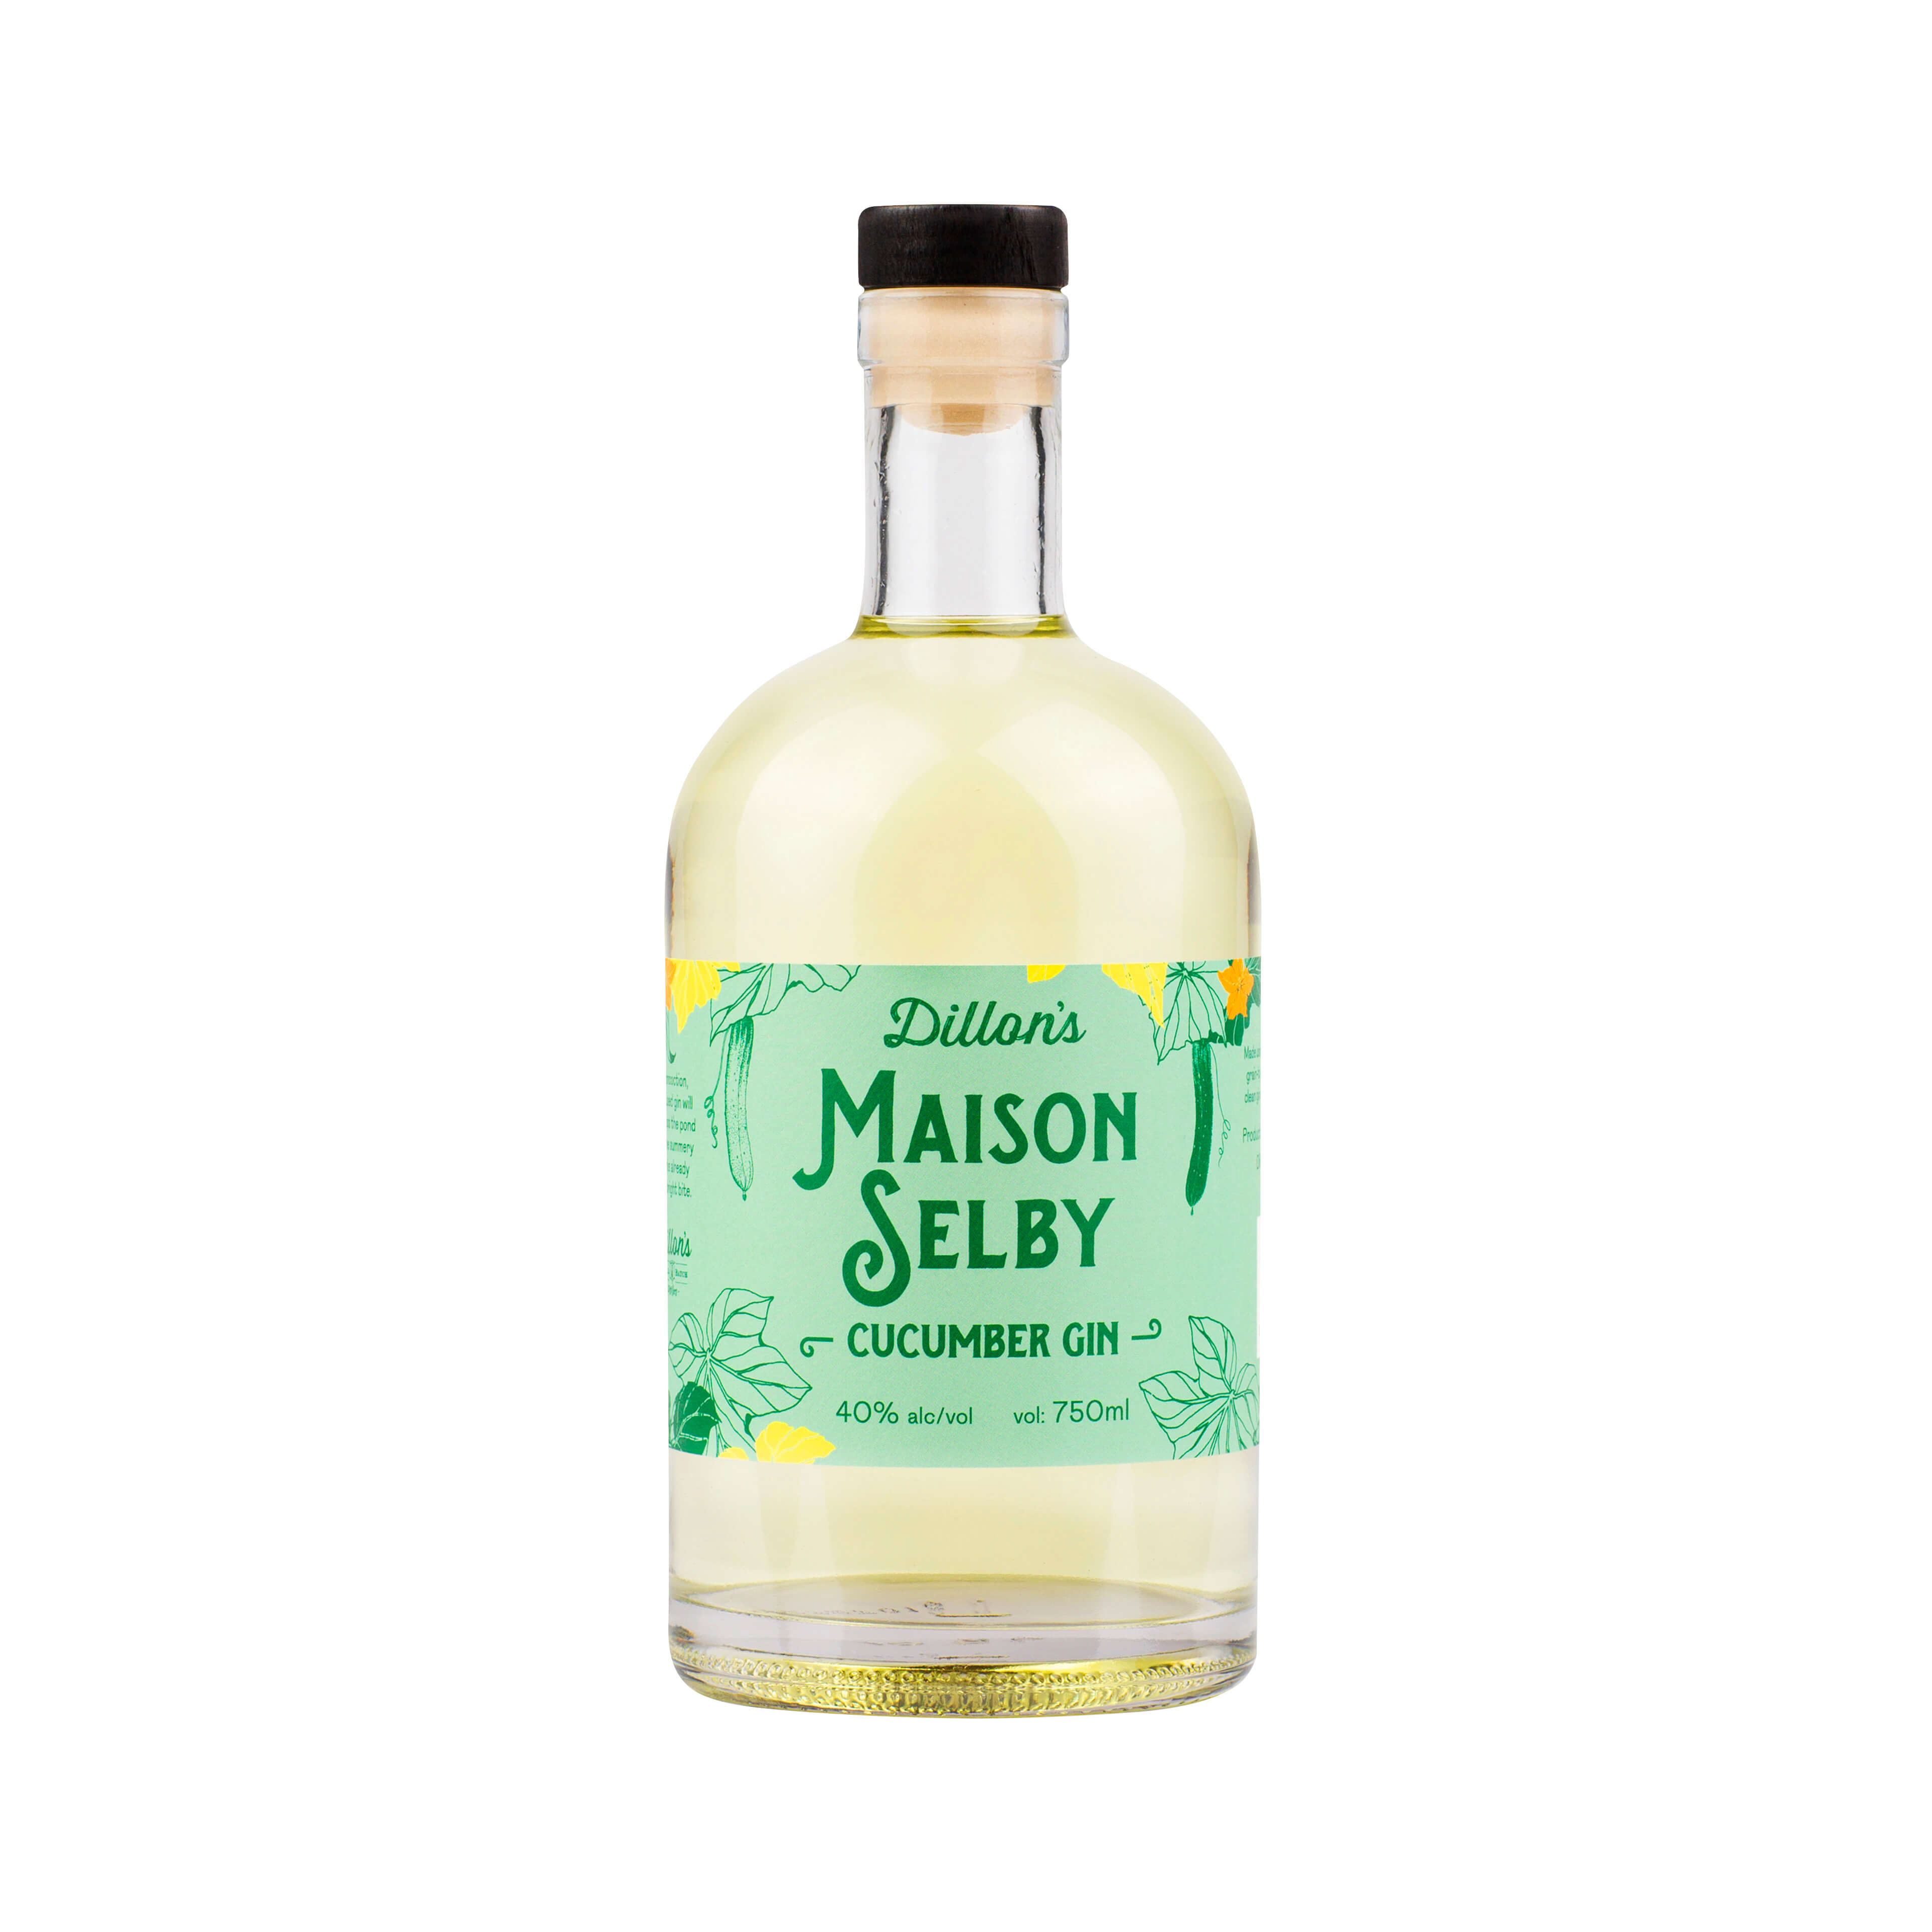 Maison Selby cucumber gin